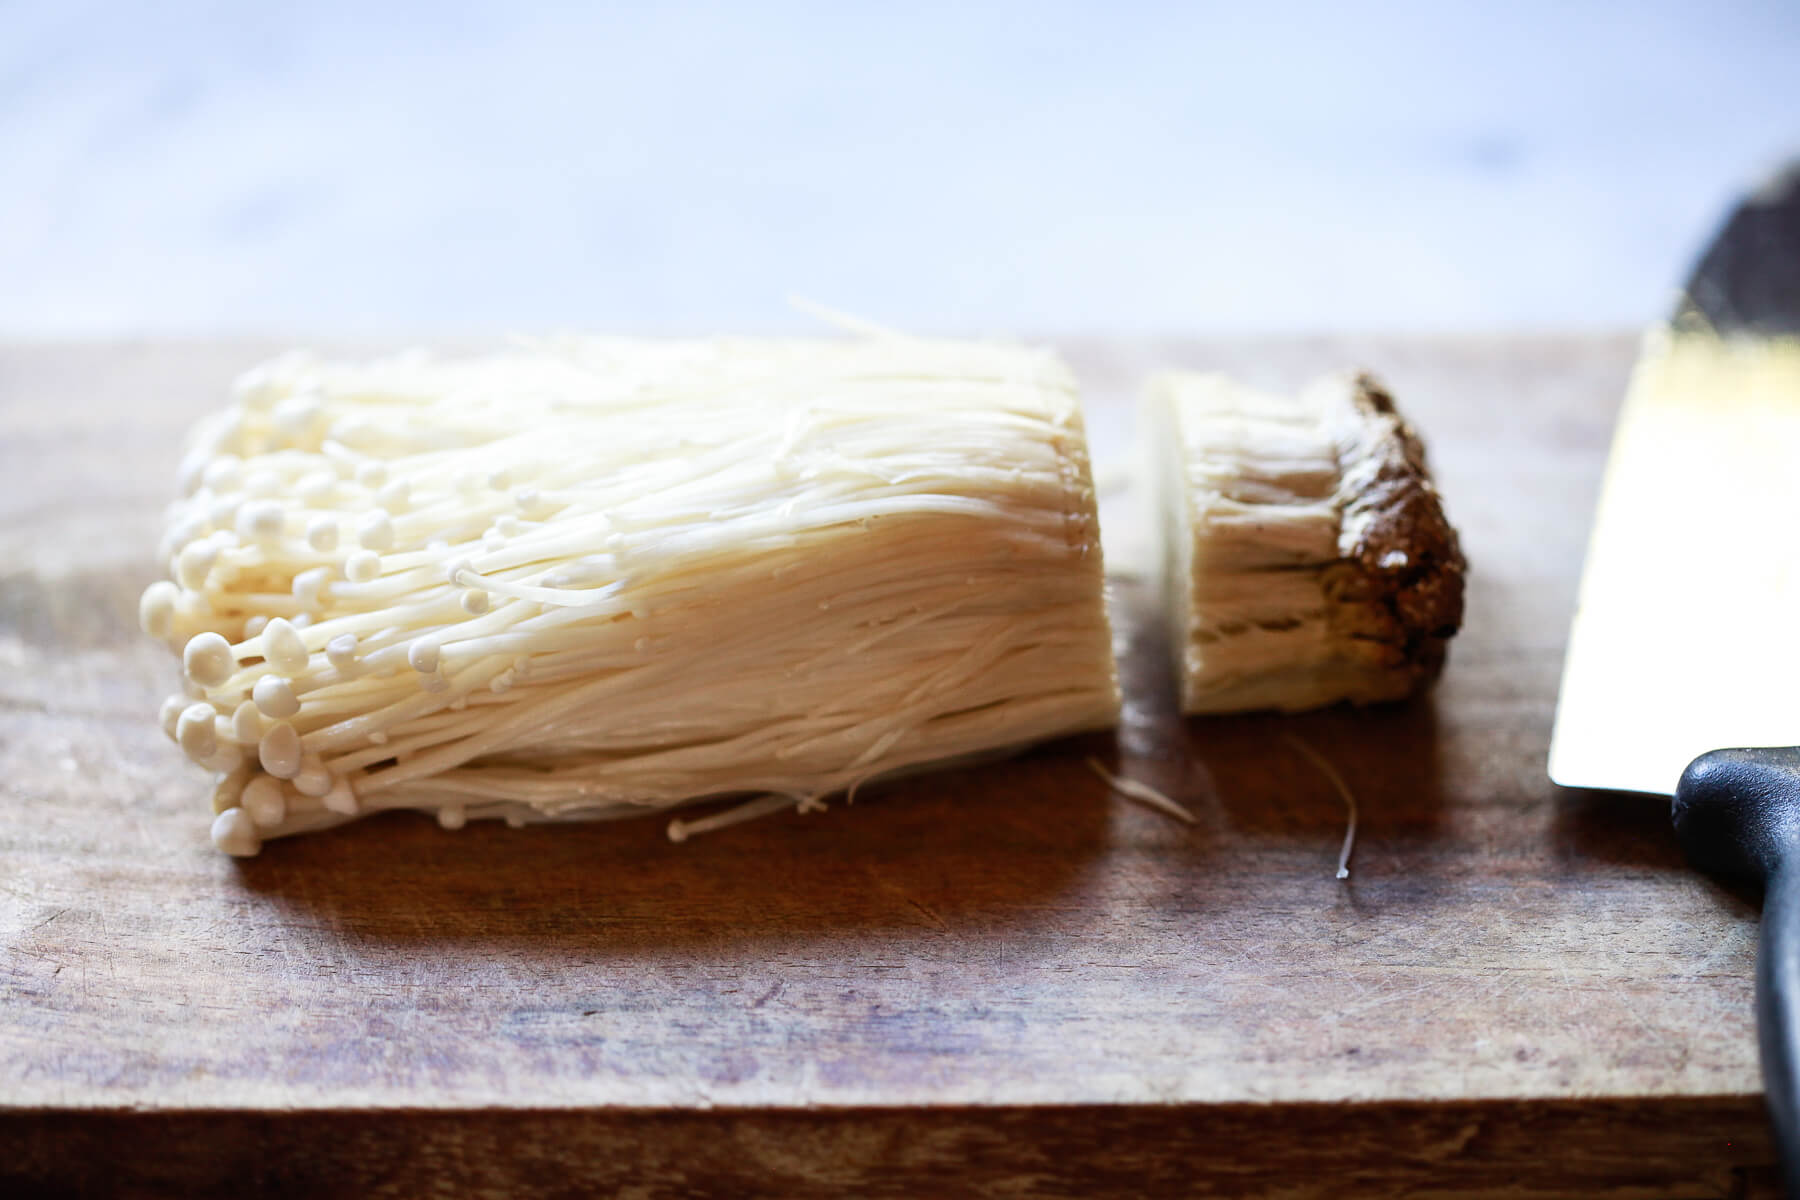 Enoki mushrooms with the root cut off.